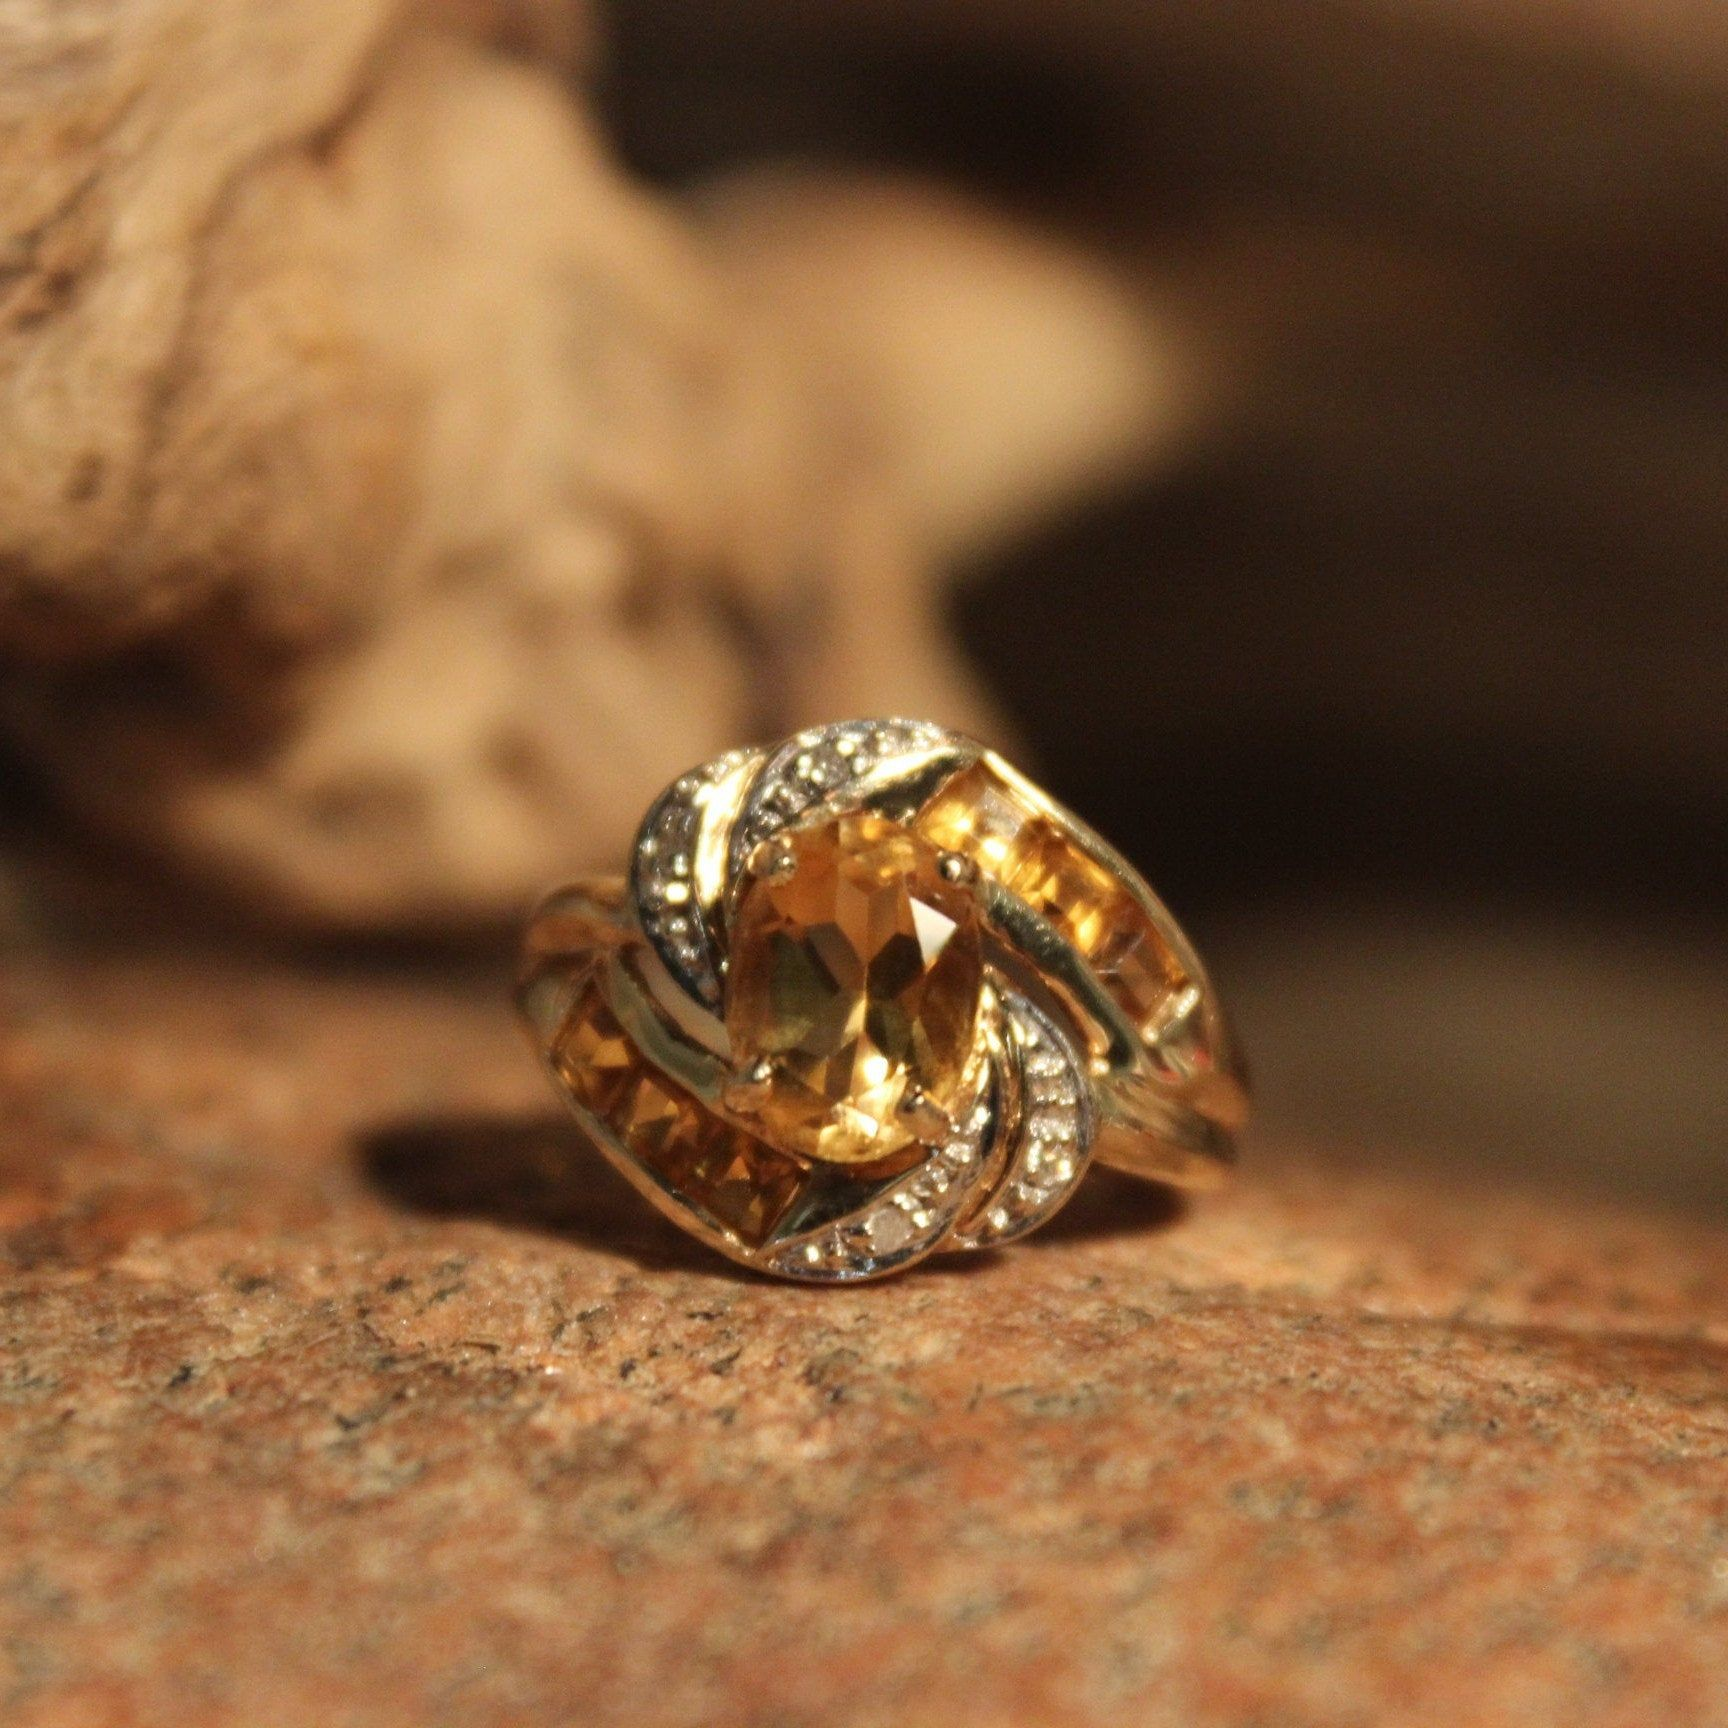 1990 S Vintage 10k Solid Gold Citrine Diamond Ring 2 4 Grams Size 4 Yellow Gold Citrine Ring 1990 Gold Ring Vintage Gold Citrine Rings In 2020